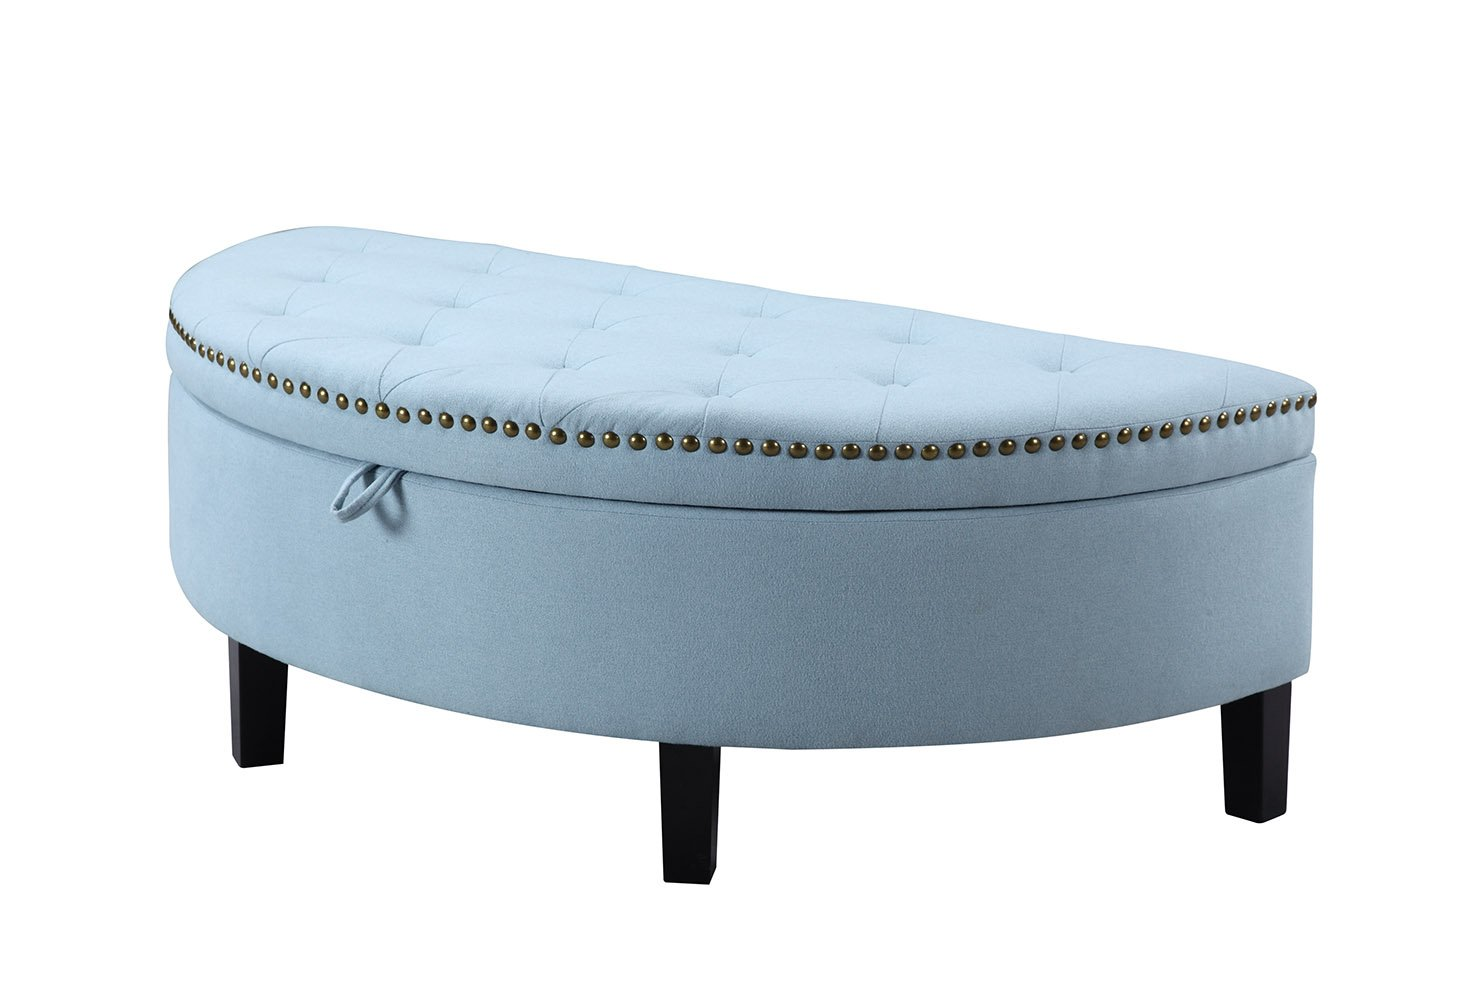 Amazon.com: Iconic Home Jacqueline Tufted Blue Soft Brushed Linen Half Moon Storage  Ottoman With Gold Nail Head Trim: Kitchen U0026 Dining